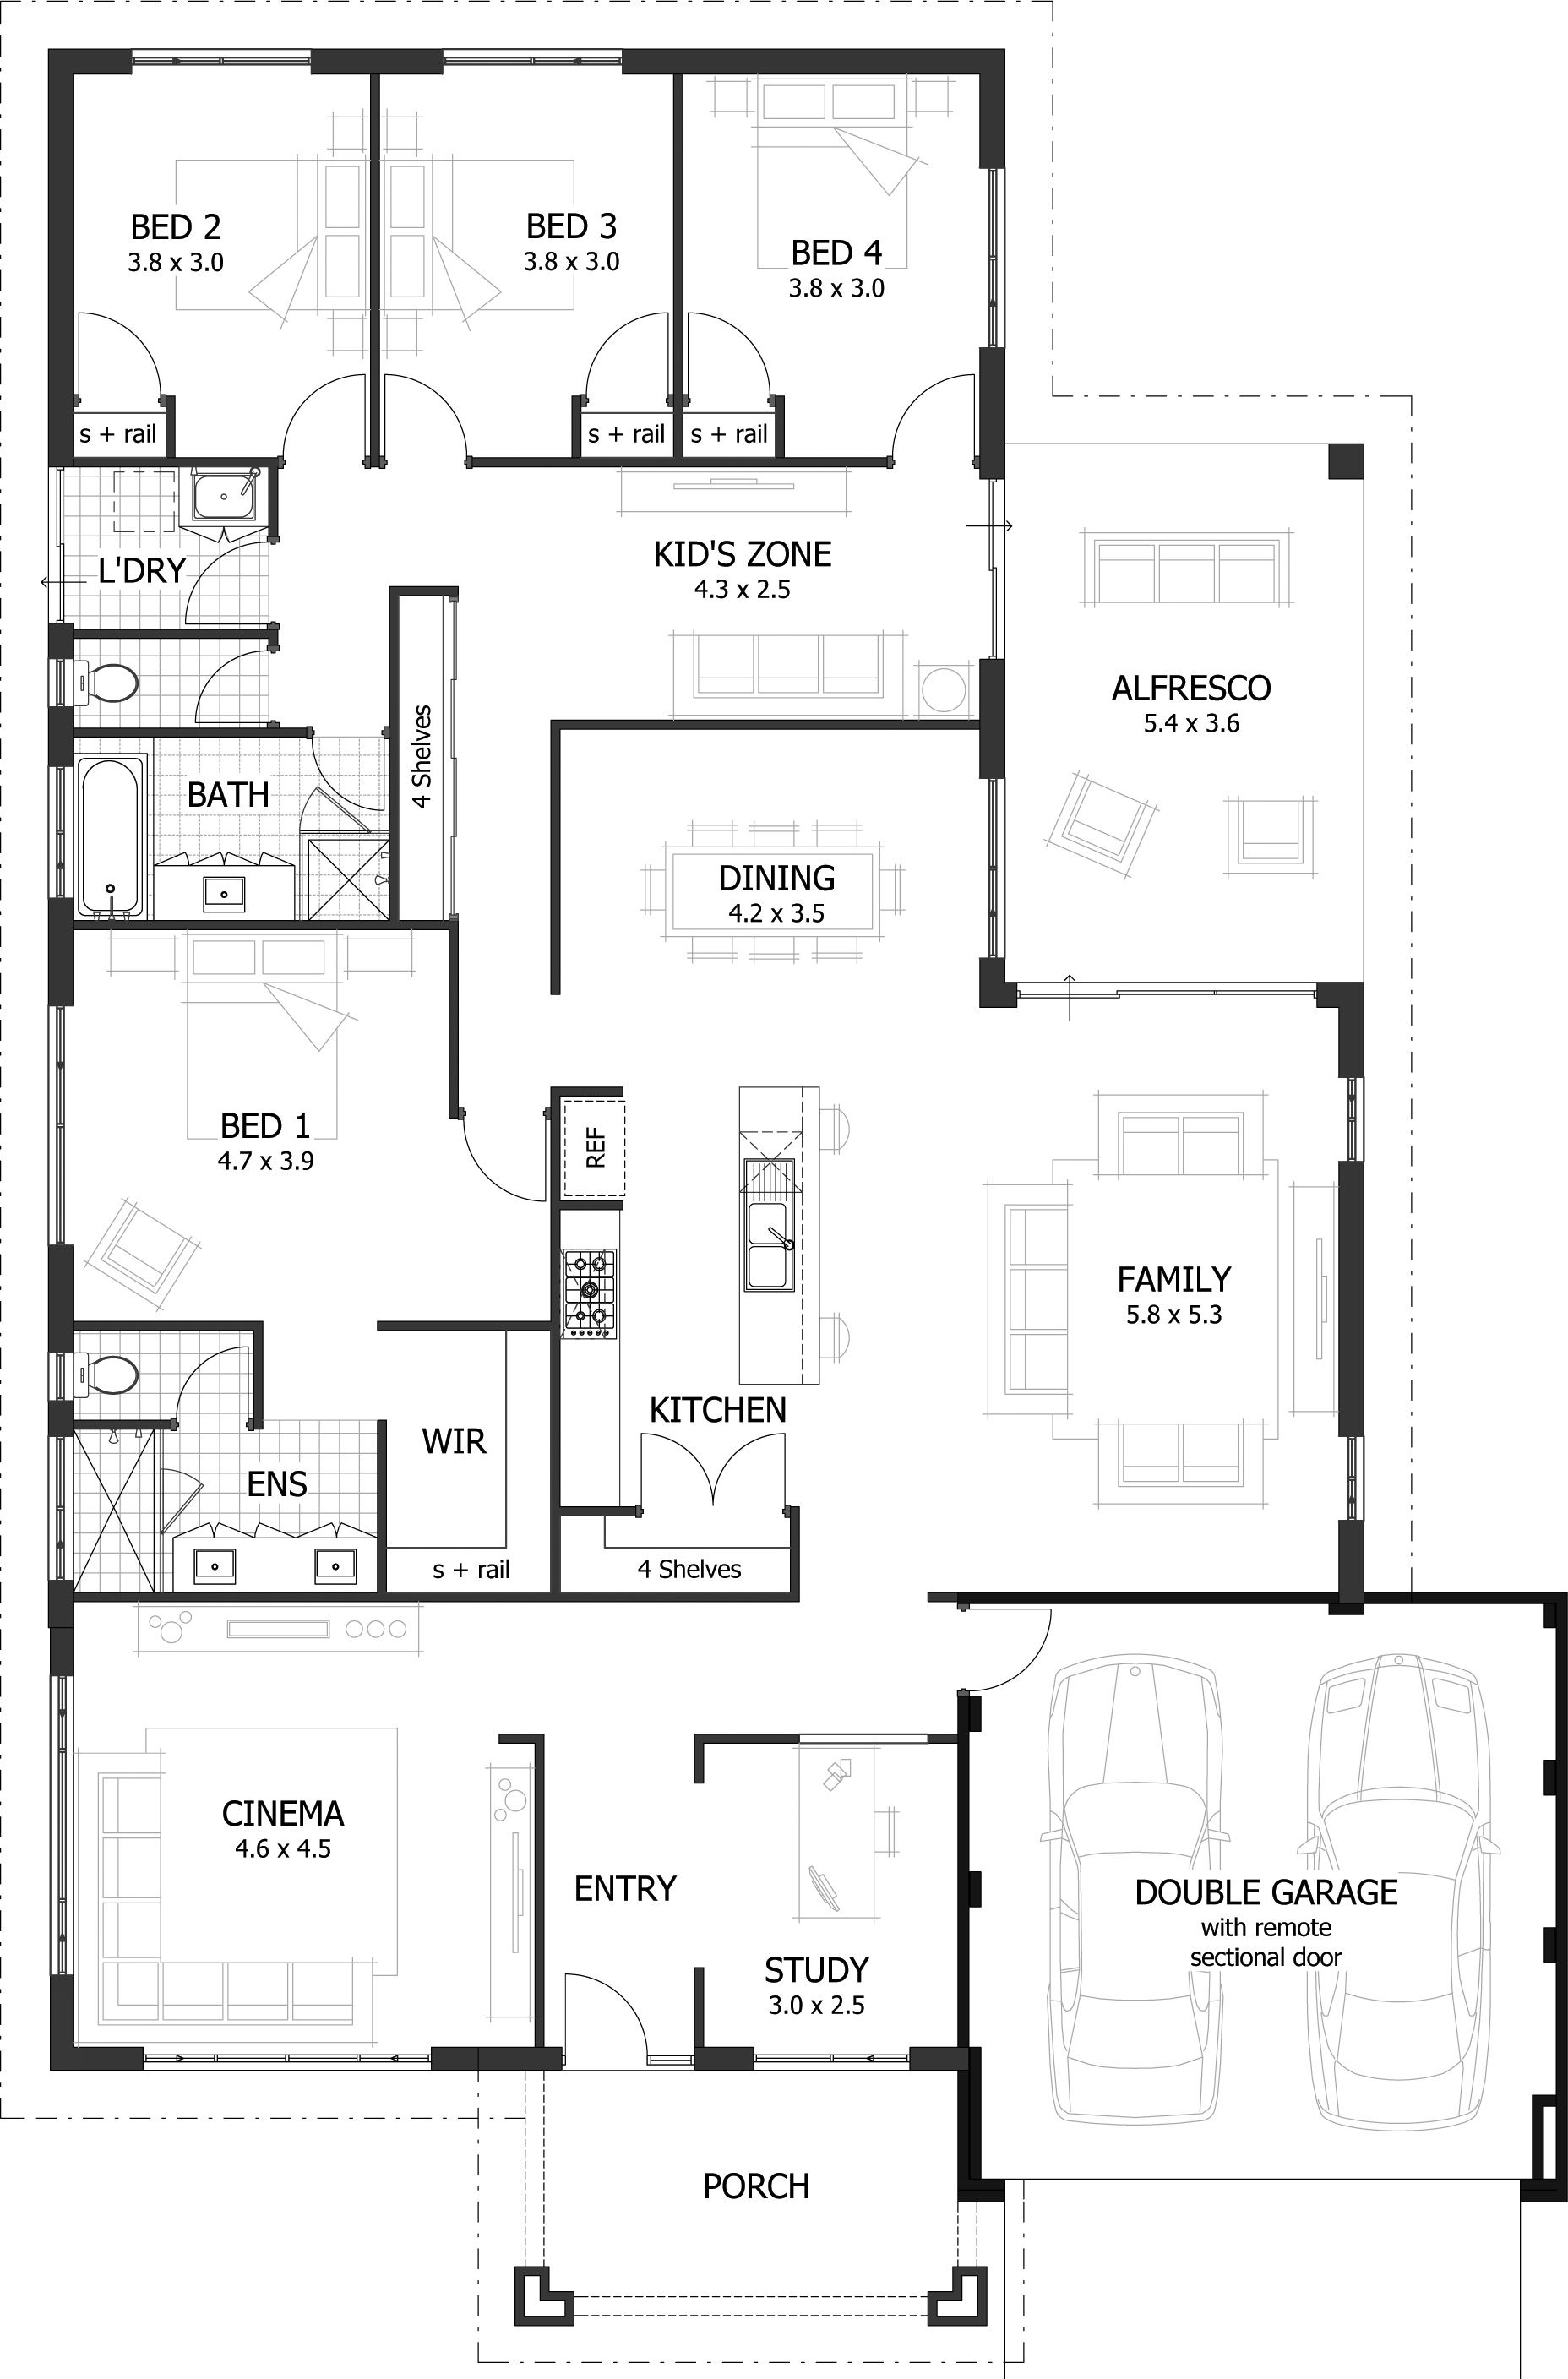 4 Bedroom House Plans Home Designs 4 Bedroom House Plans 5 Bedroom House Plans Bedroom House Plans